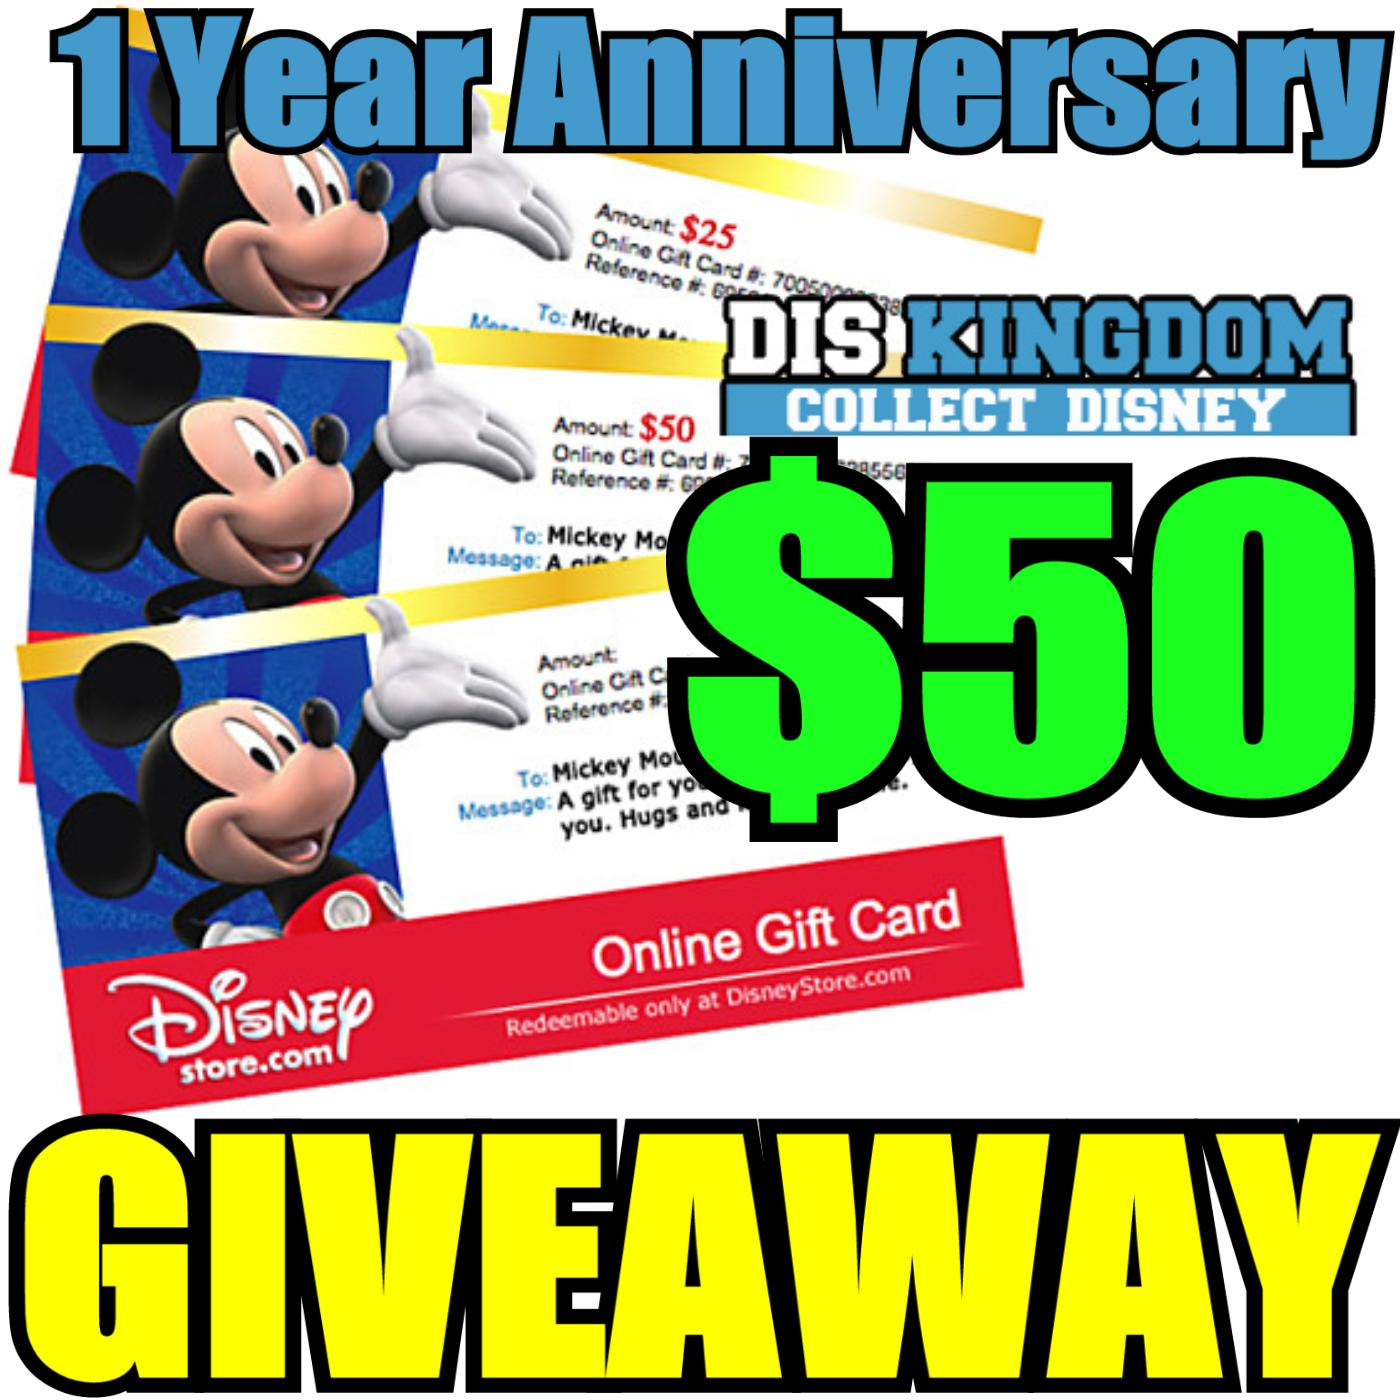 How to use shopDisney Coupons: The shopDisney is known for having promos or sales often. On the checkout page, enter the coupon found on fonodeqajebajof.gq where it says